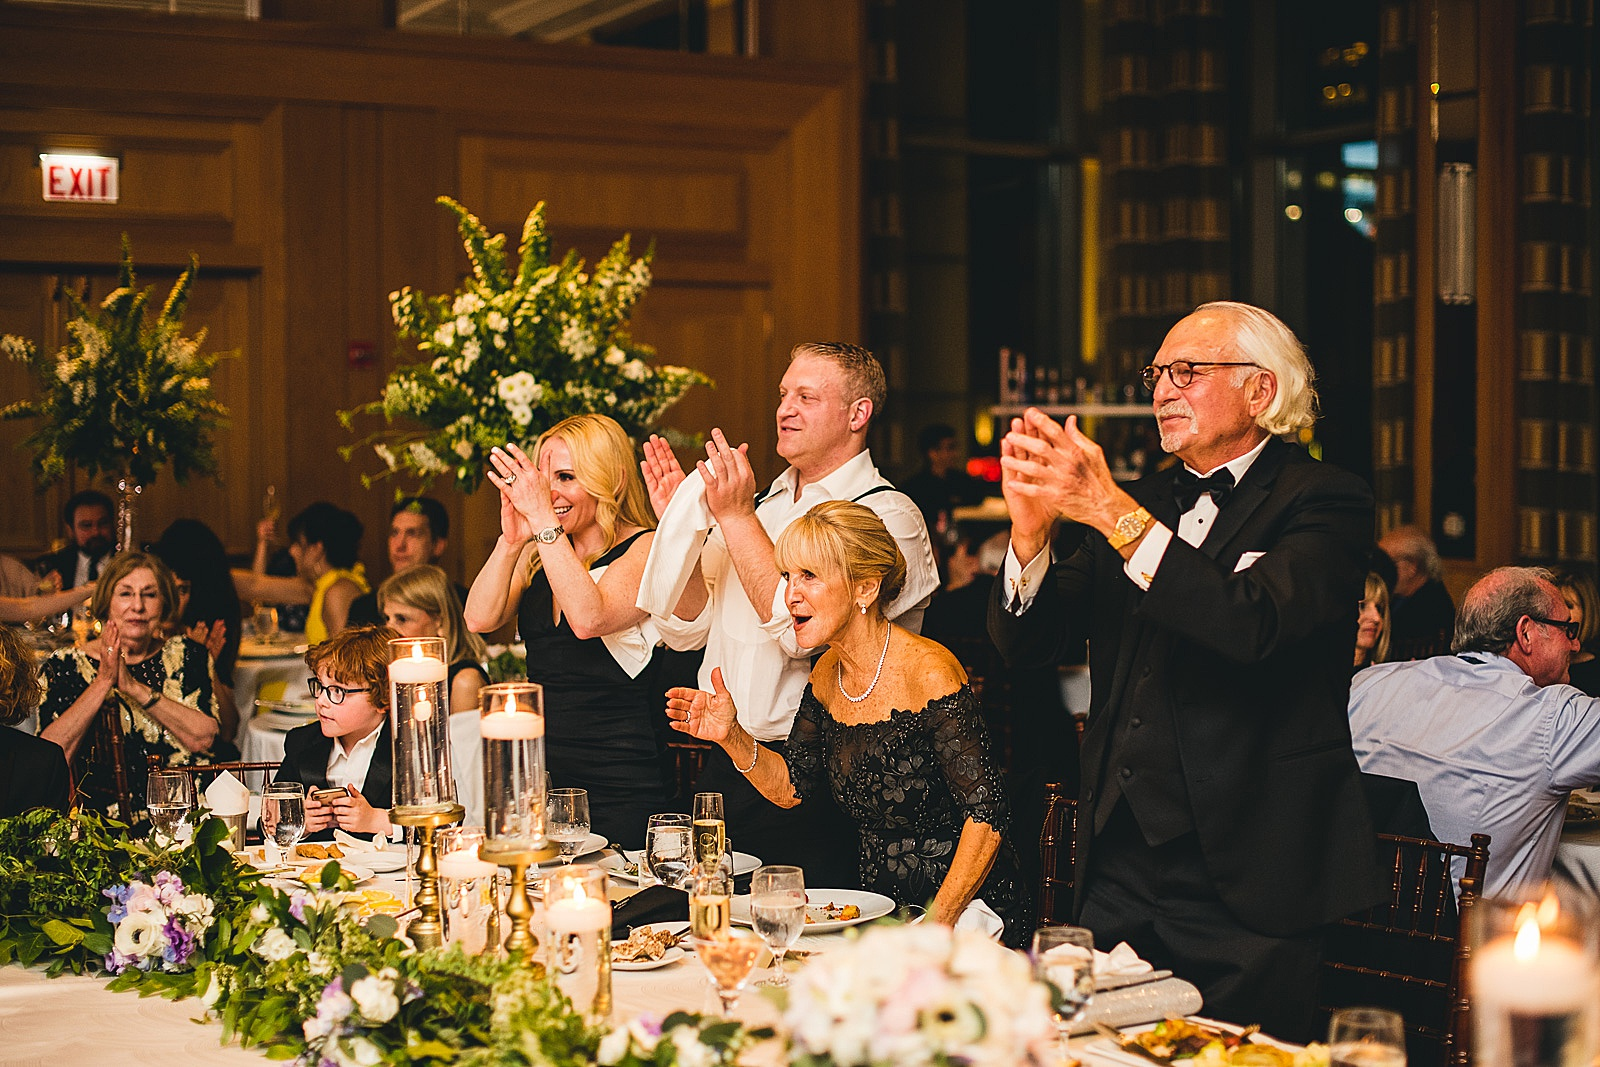 66 stanting ovation - Susie + Eric's Jewish Wedding at the Peninsula Hotel in Chicago